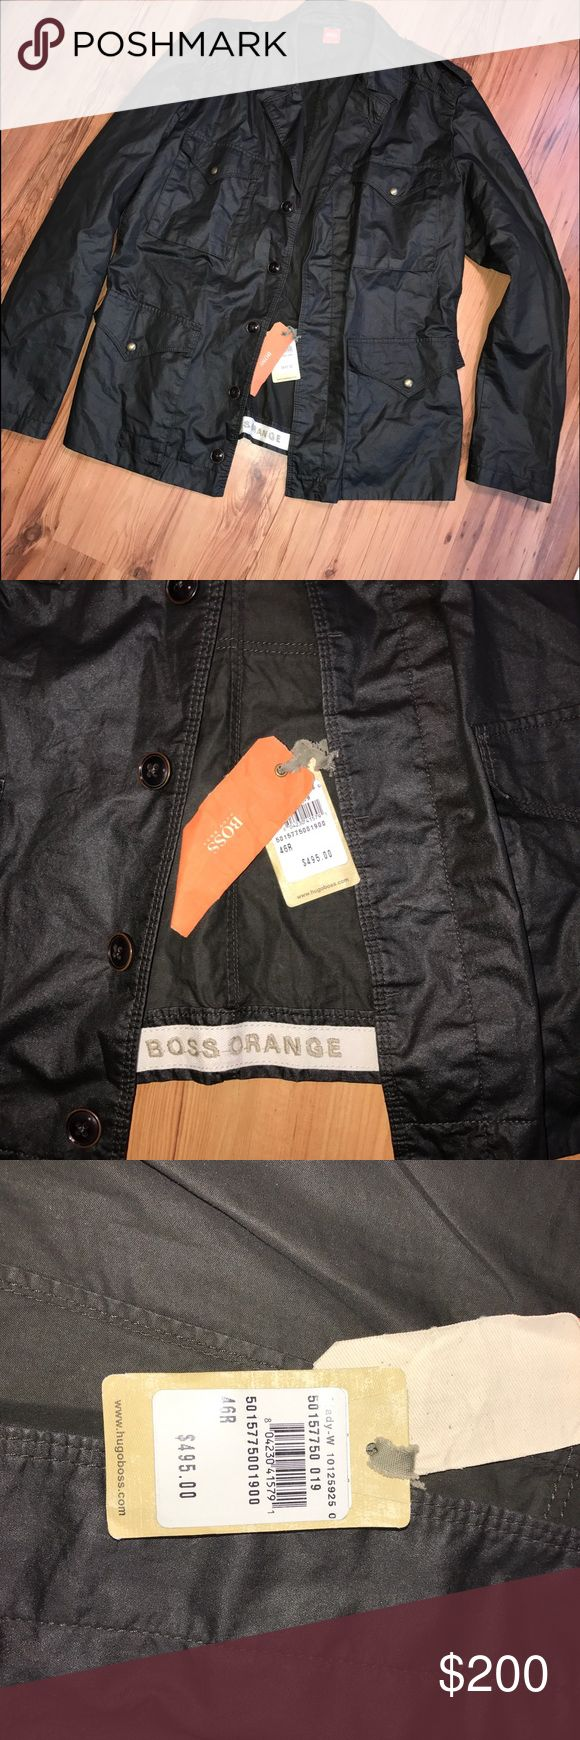 Men's boss jacket! NEW with tag men's black boss jacket from Nordstrom size is a 46R which I'd say fits like a regular XL BOSS ORANGE Jackets & Coats